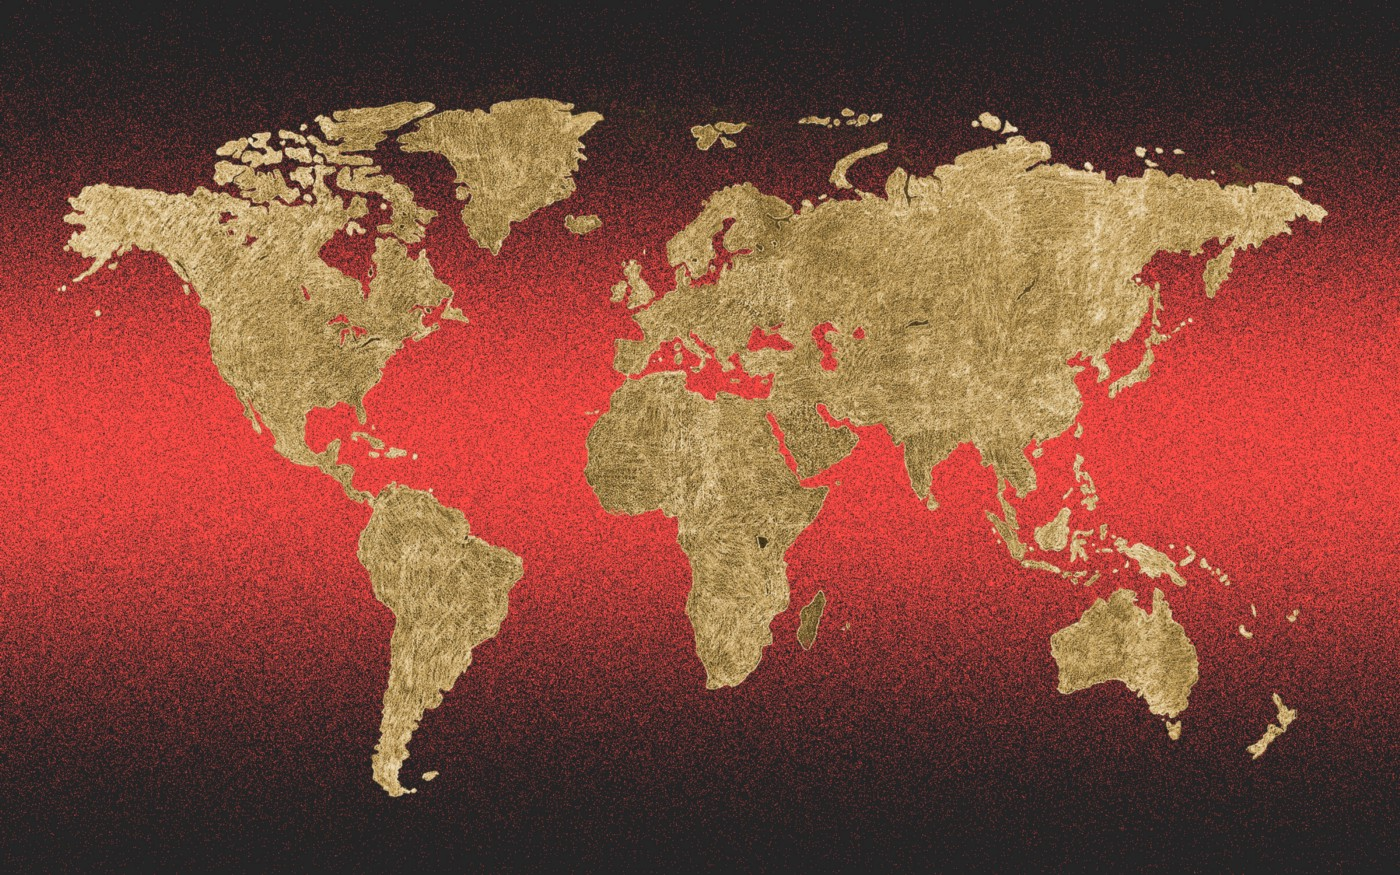 Photo treatment of a world map against a red and black background.